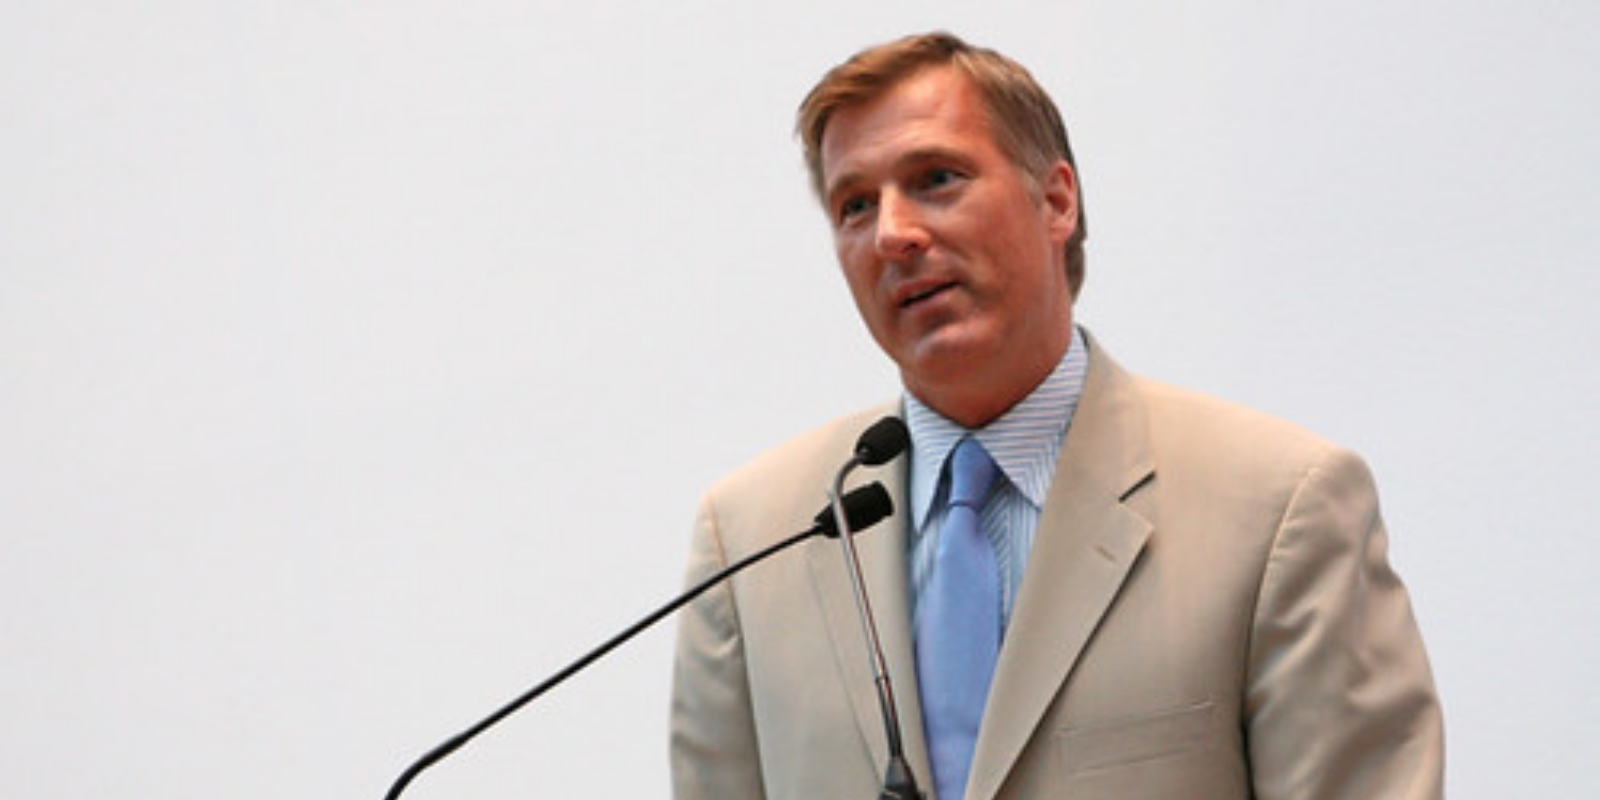 Maxime Bernier released from MB jail after arrest at anti-lockdown rally